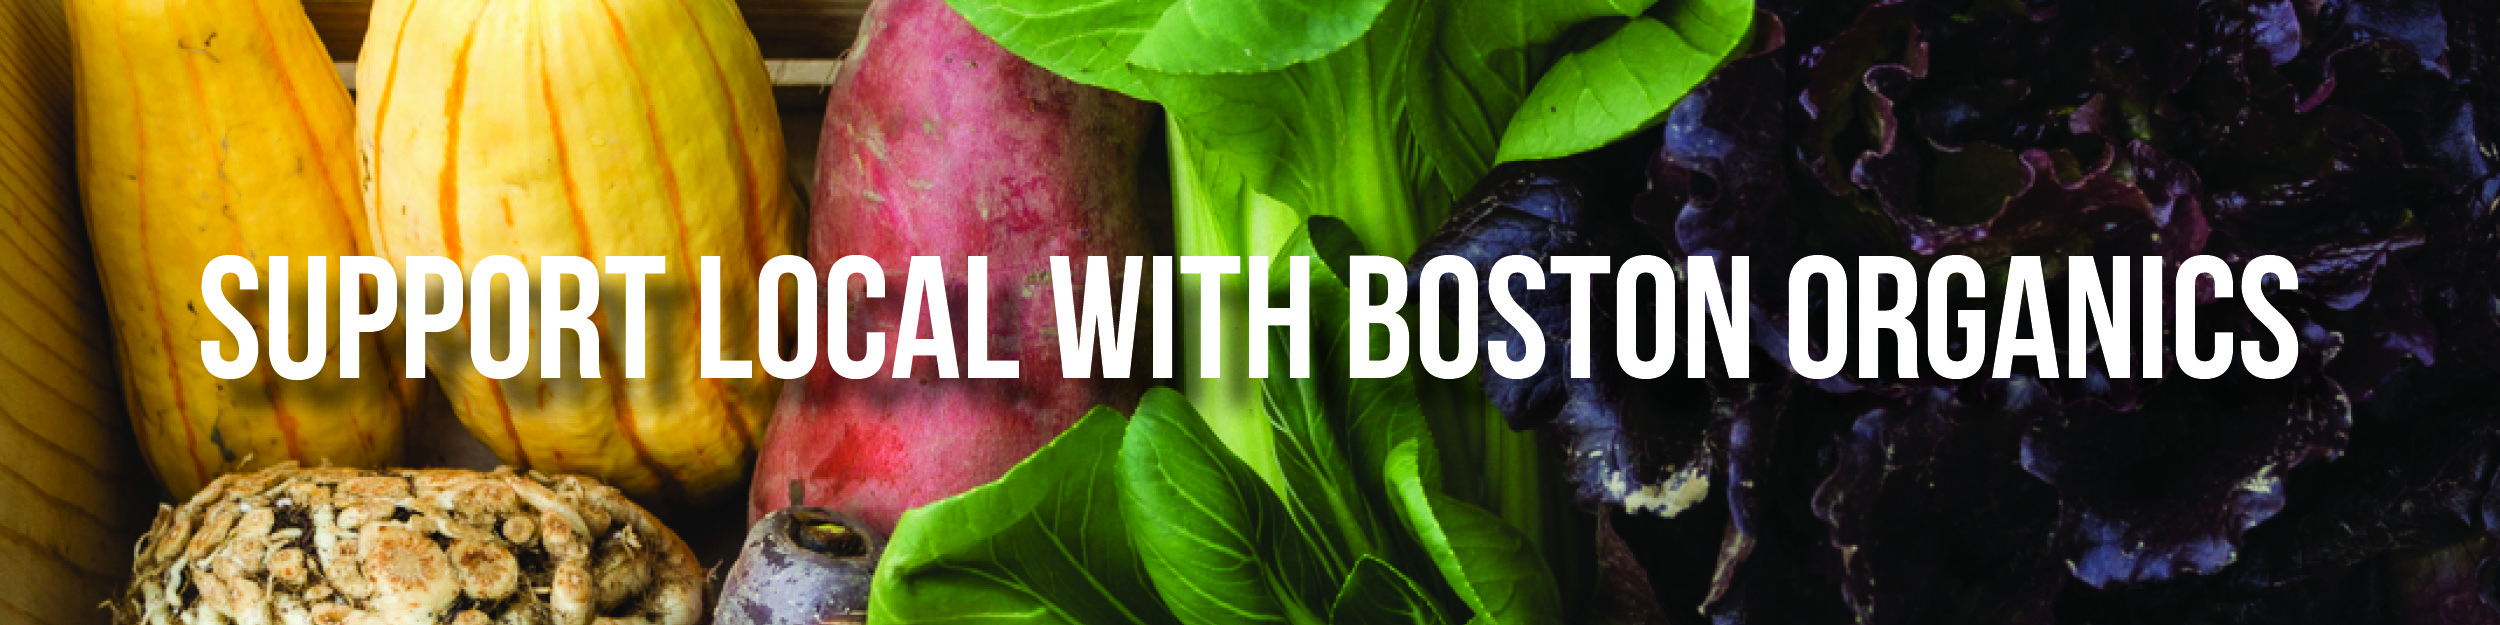 banner_support_local_with_boston_organics_600px